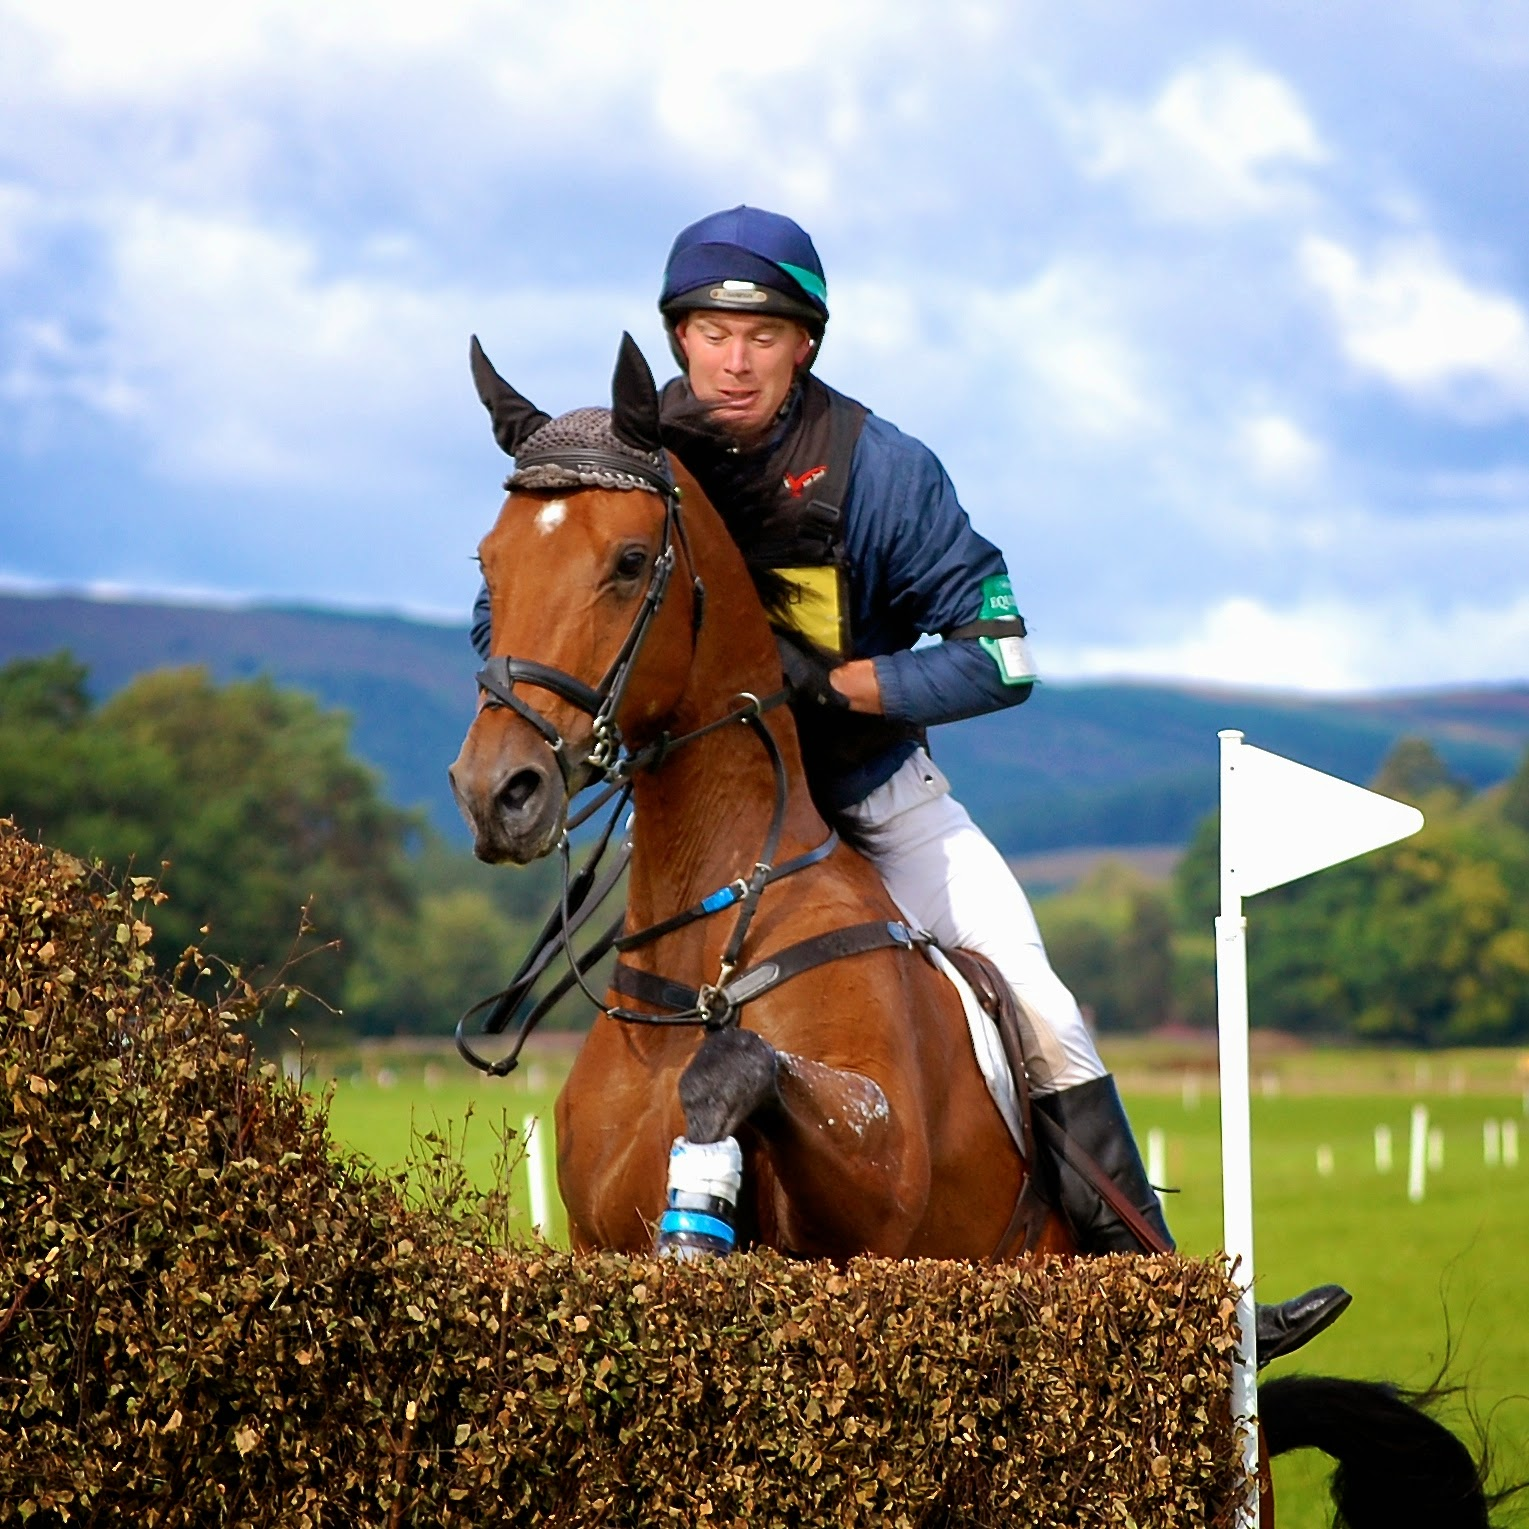 Jumping a brush fence at the Blair Castle International Horse Trials